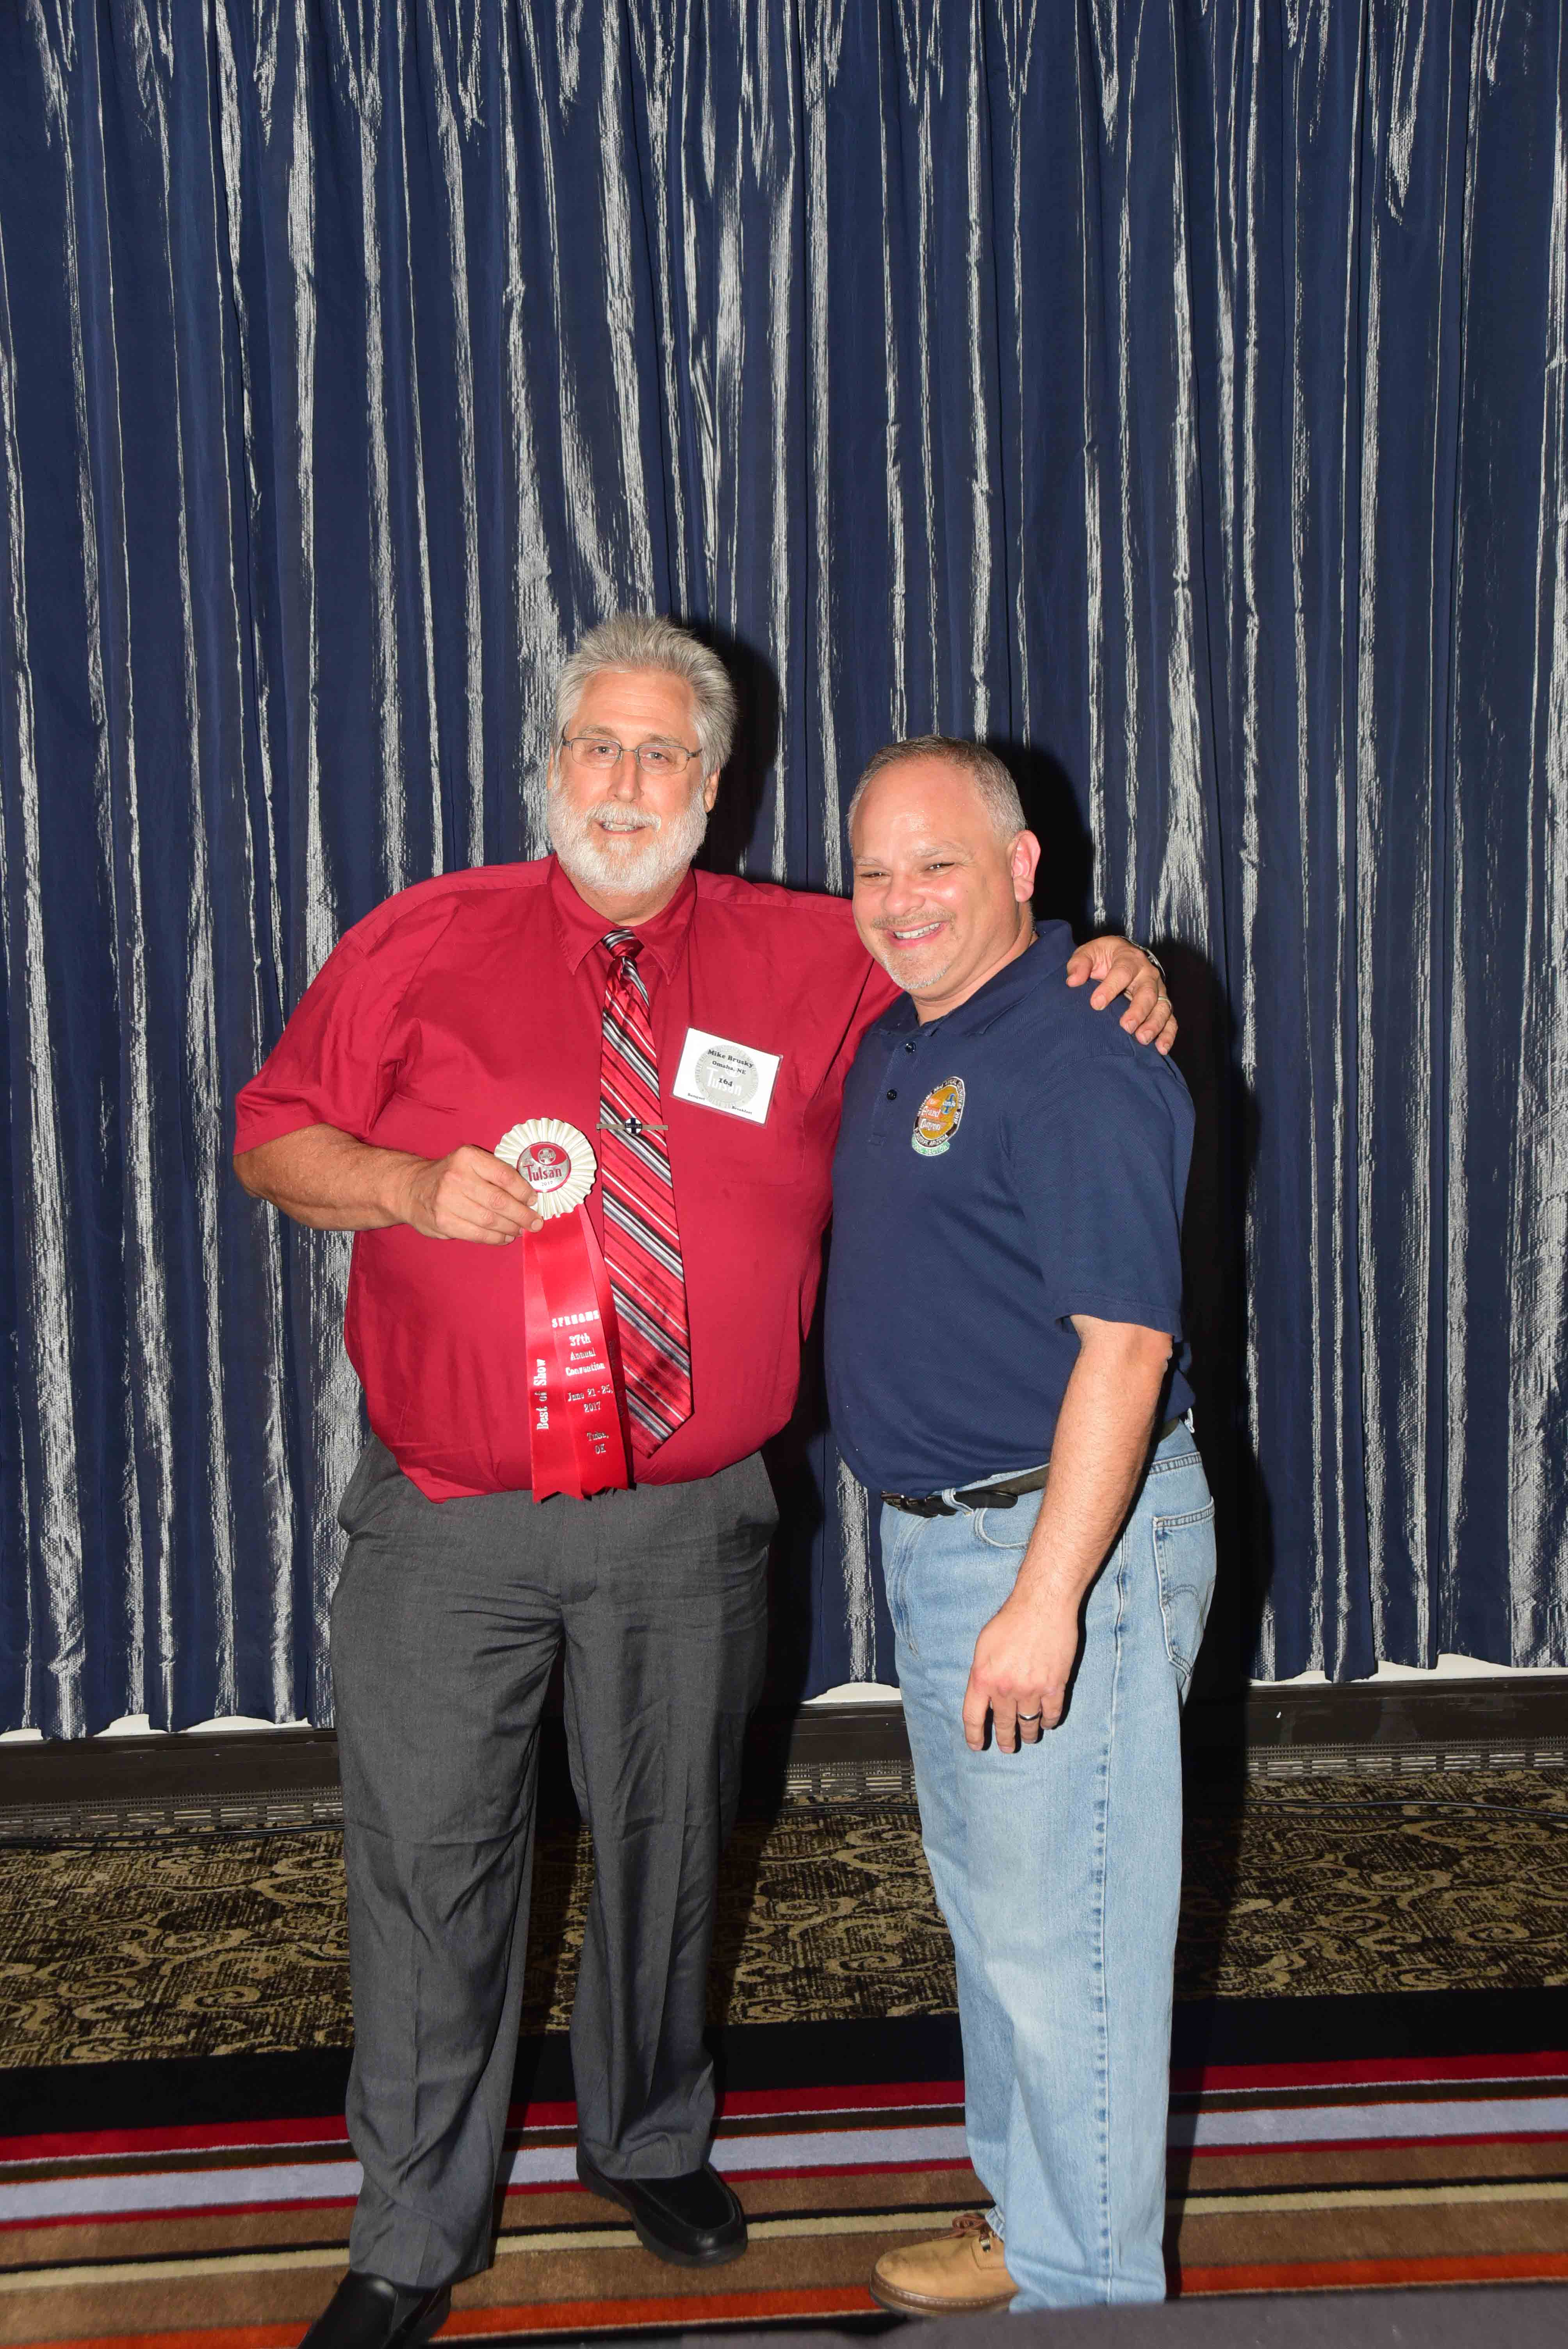 Mike Brusky receiving Best of Show ribbon